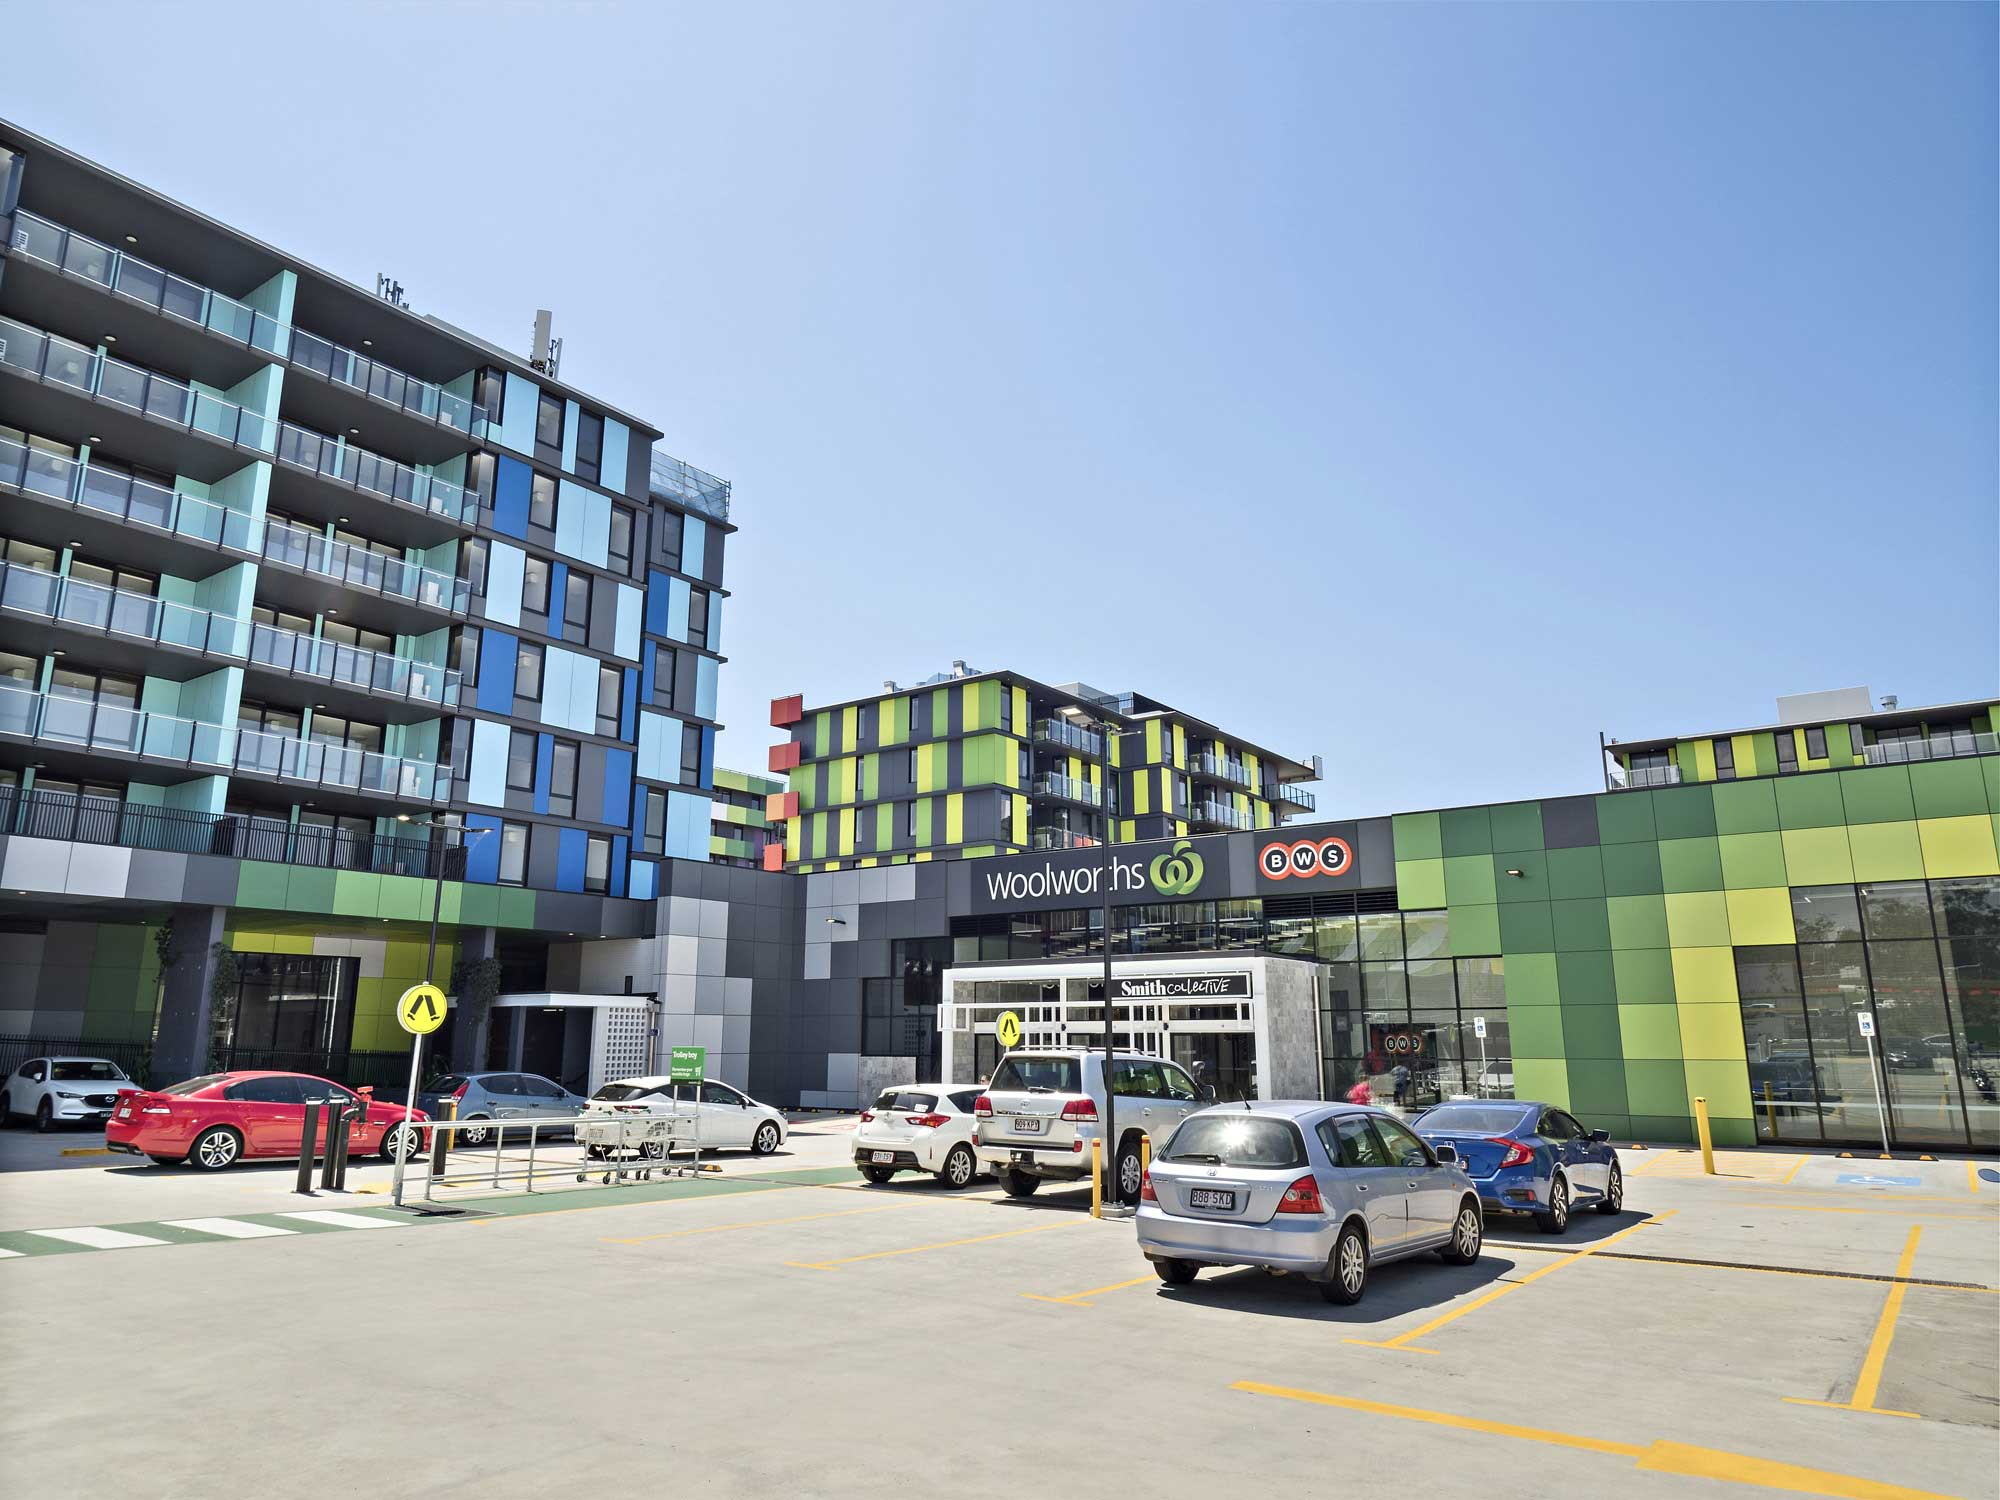 The Unita 2018 Commonwealth Village retail enhancement project